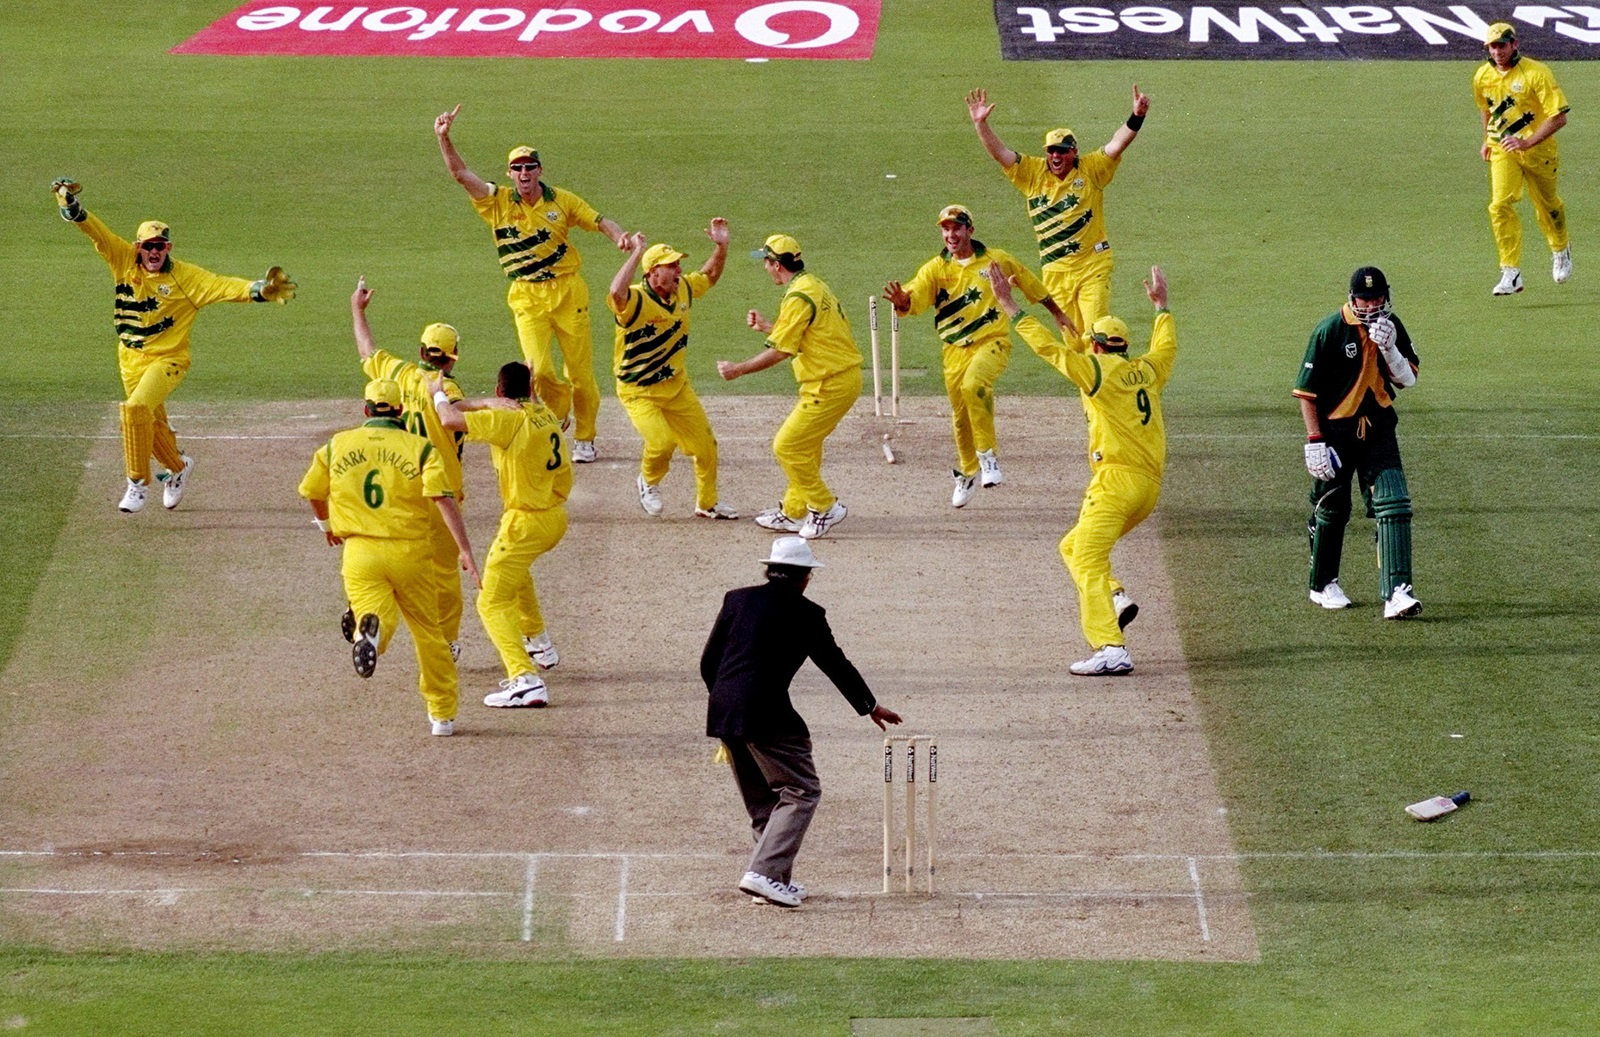 Australia Vs South Africa 2nd Semi Final Icc Cricket World Cup 1999 Highlights